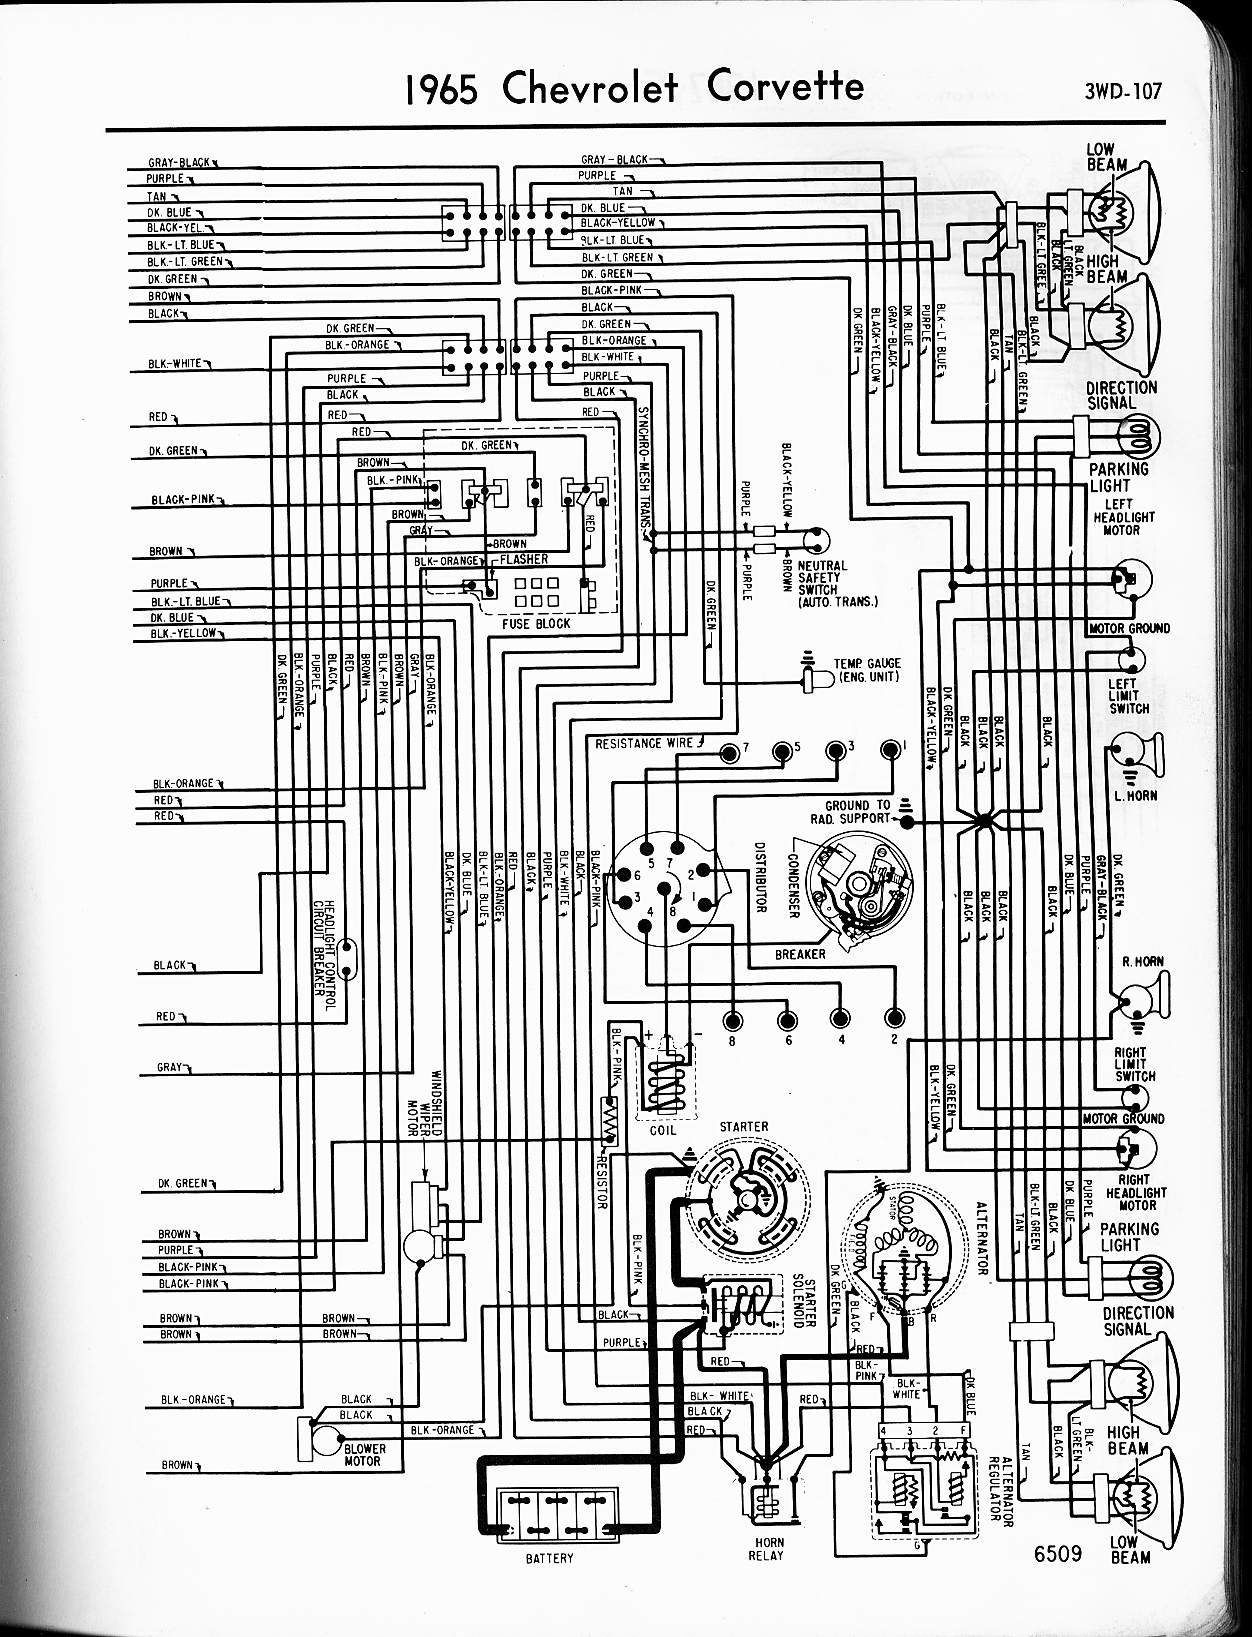 Skoda Fabia 2002 Fuse Diagram Search For Wiring Diagrams Schematics 57 65 Chevy Box Layout Wagon